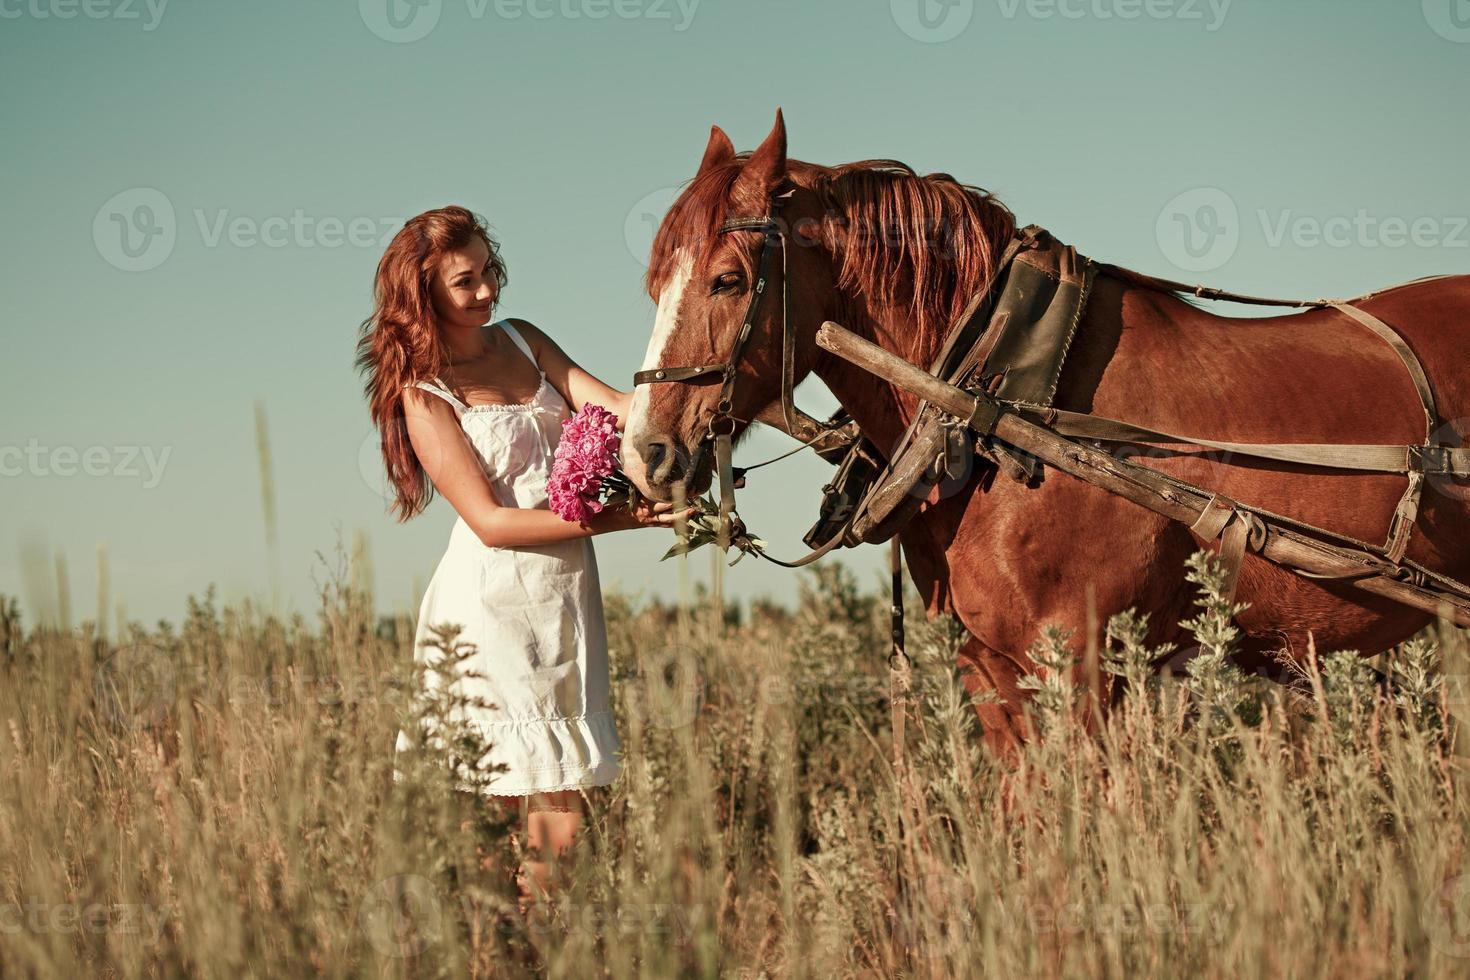 Woman and horse in summer day, outdoors. Series photo